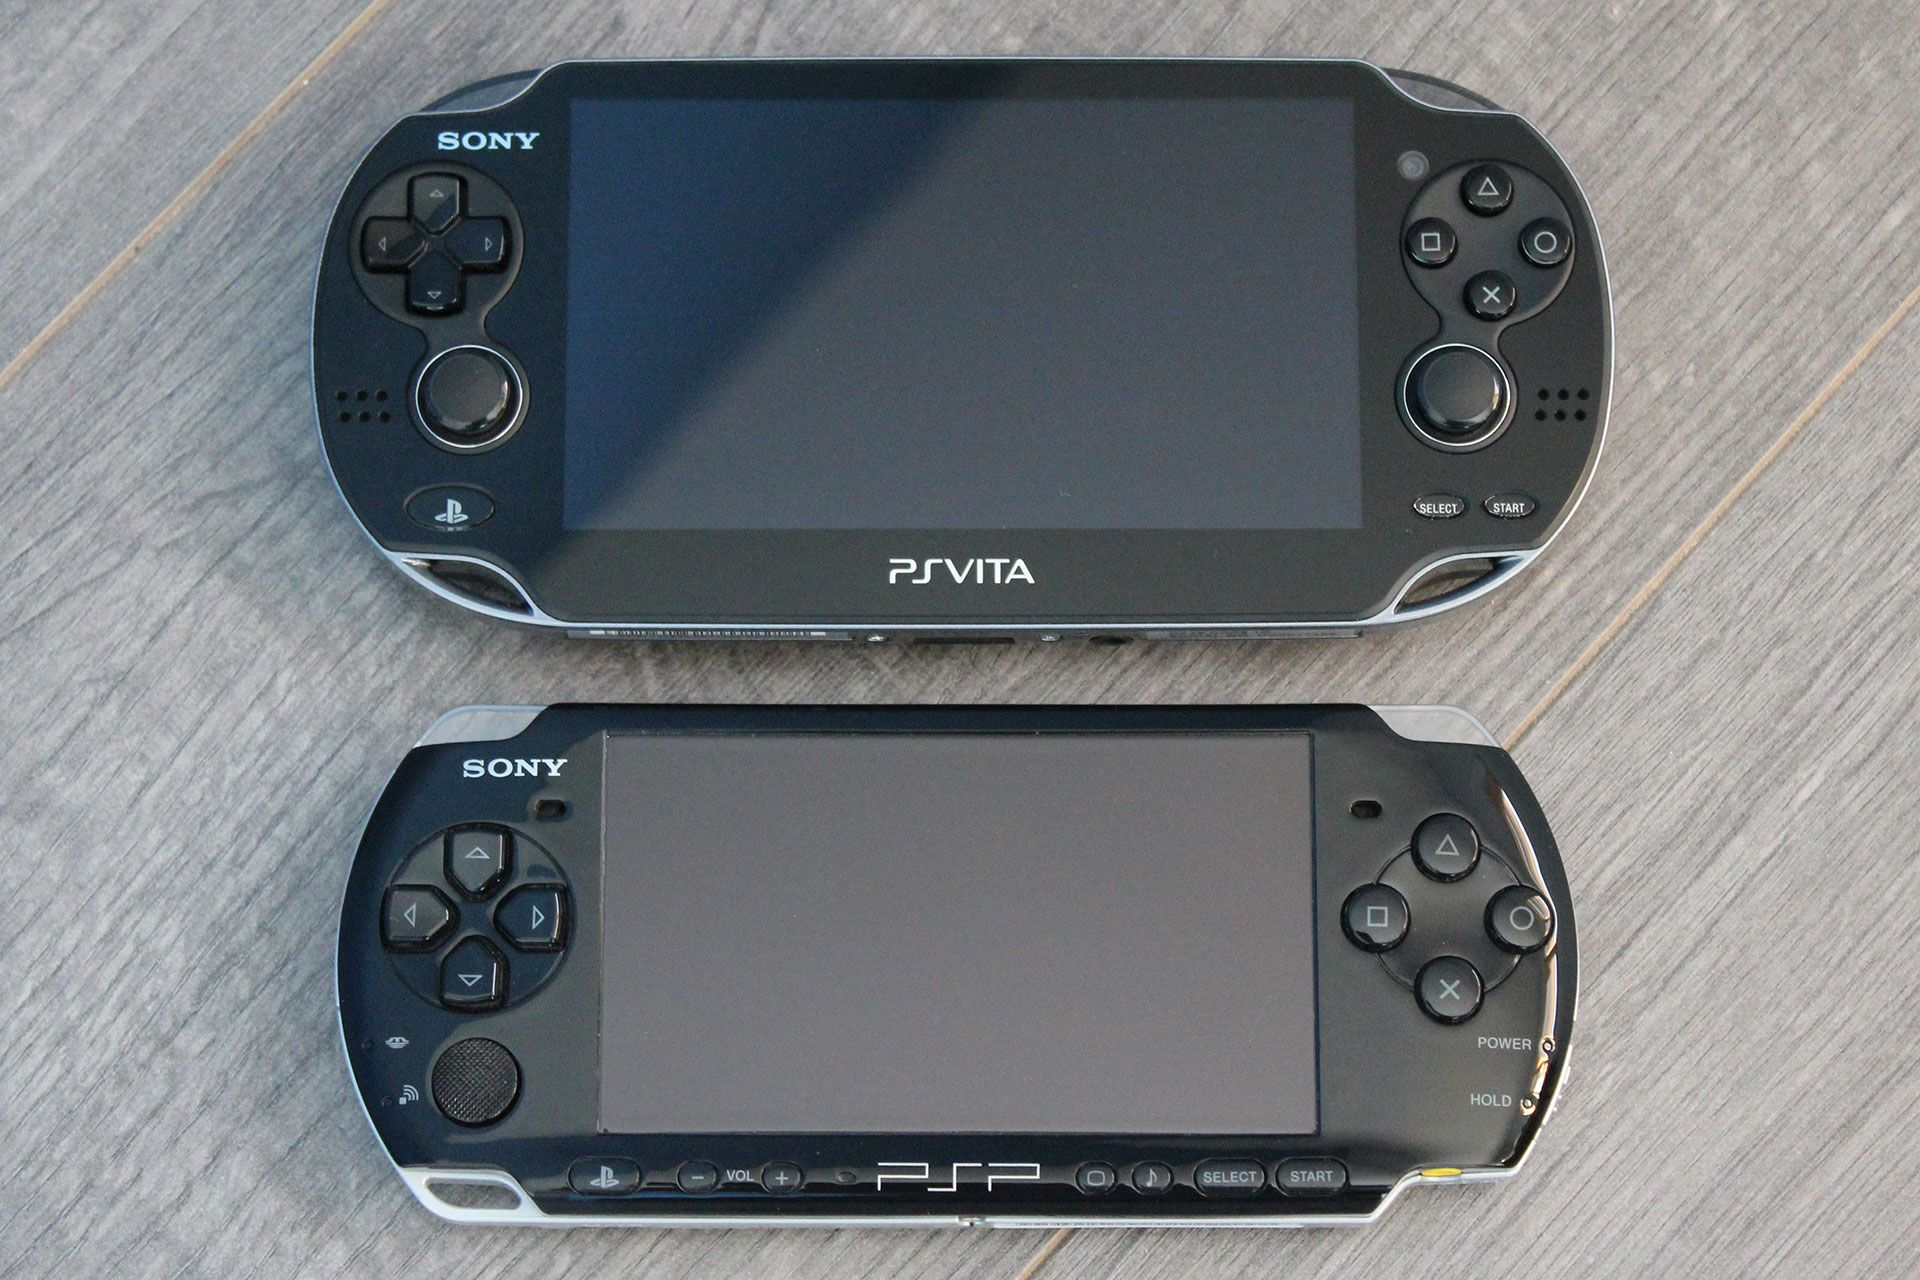 sony psp and ps vita sideside. | gaming | pinterest | psp and